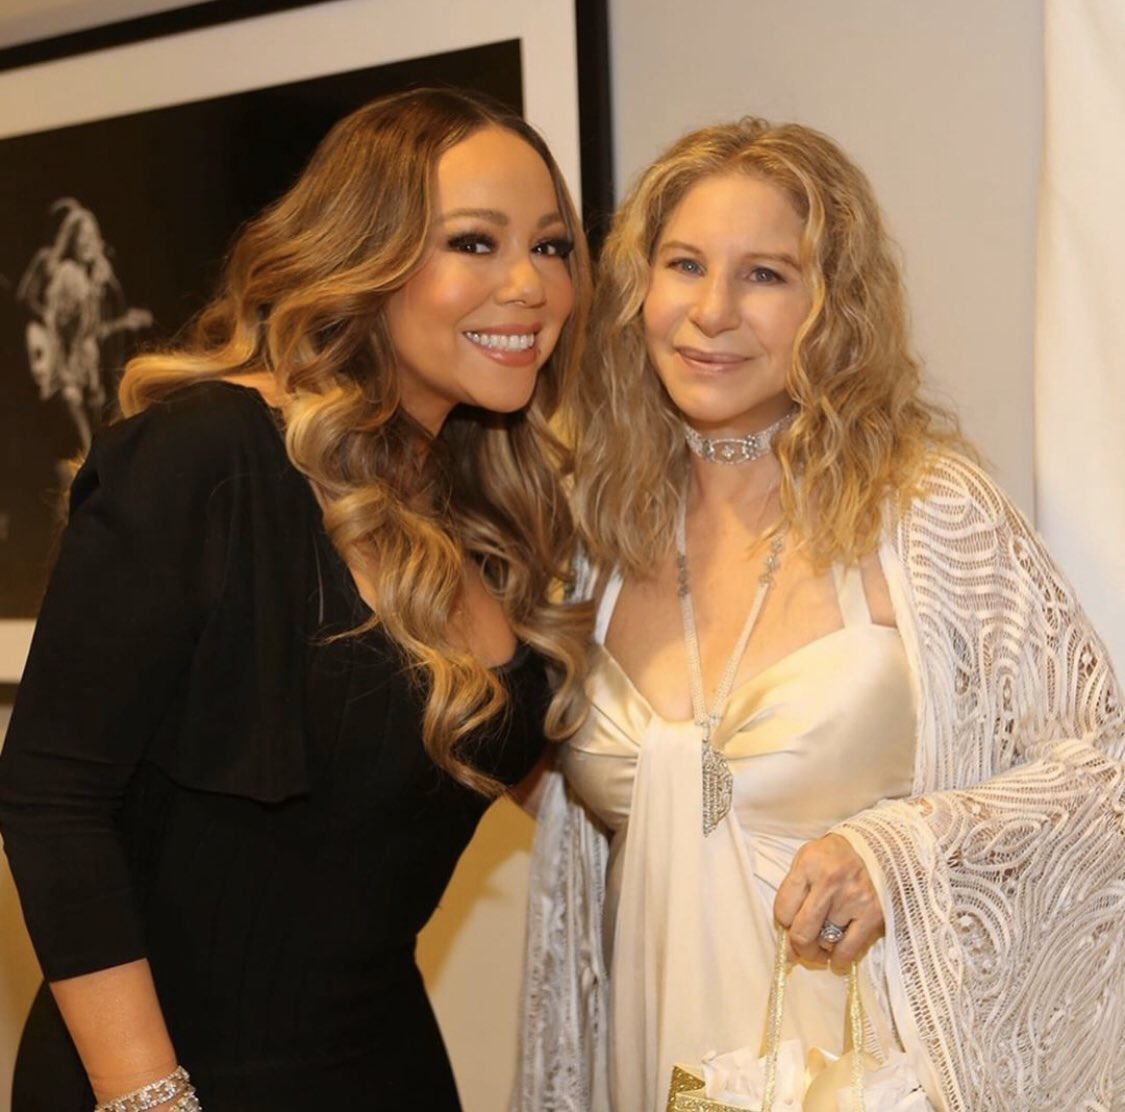 Happy big b'day @MariahCarey! It was nice seeing you at my last concert in New York. Hope you're well - stay inside! 💛